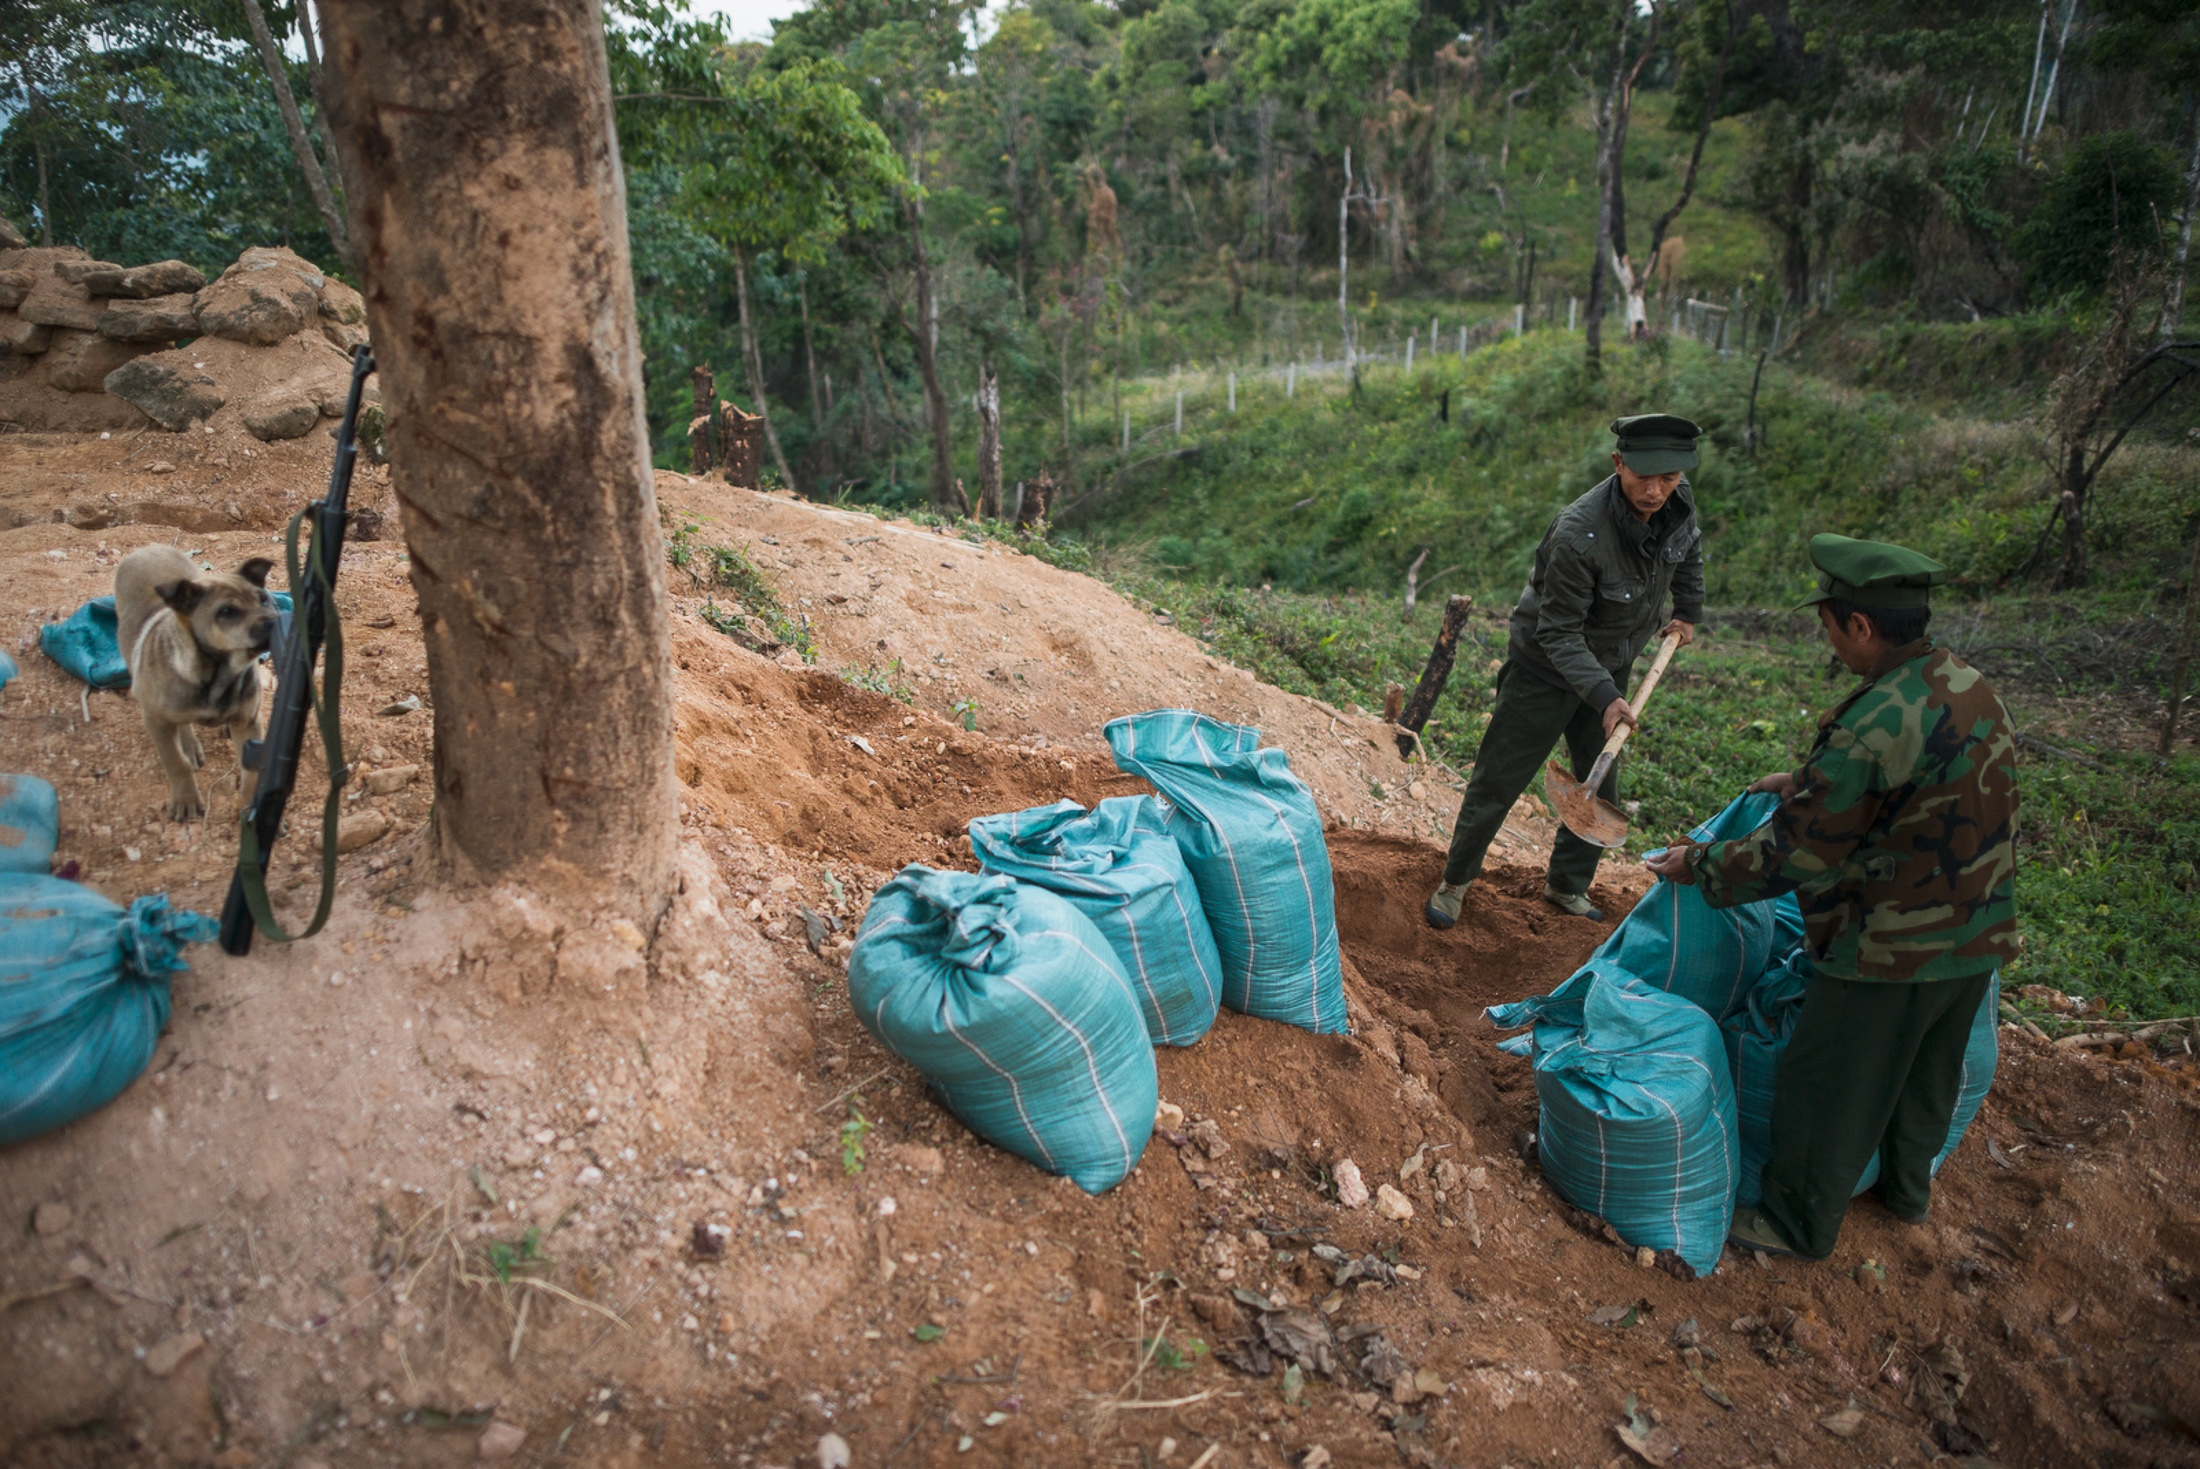 Aung Lun and Naw San, Kachin Independence Army Soldiers, reenforcing their positions with sandbags at a frontline outpost just 1 km from the Burma Armys nearest outpost. Manji the dog is inspecting the rifles.